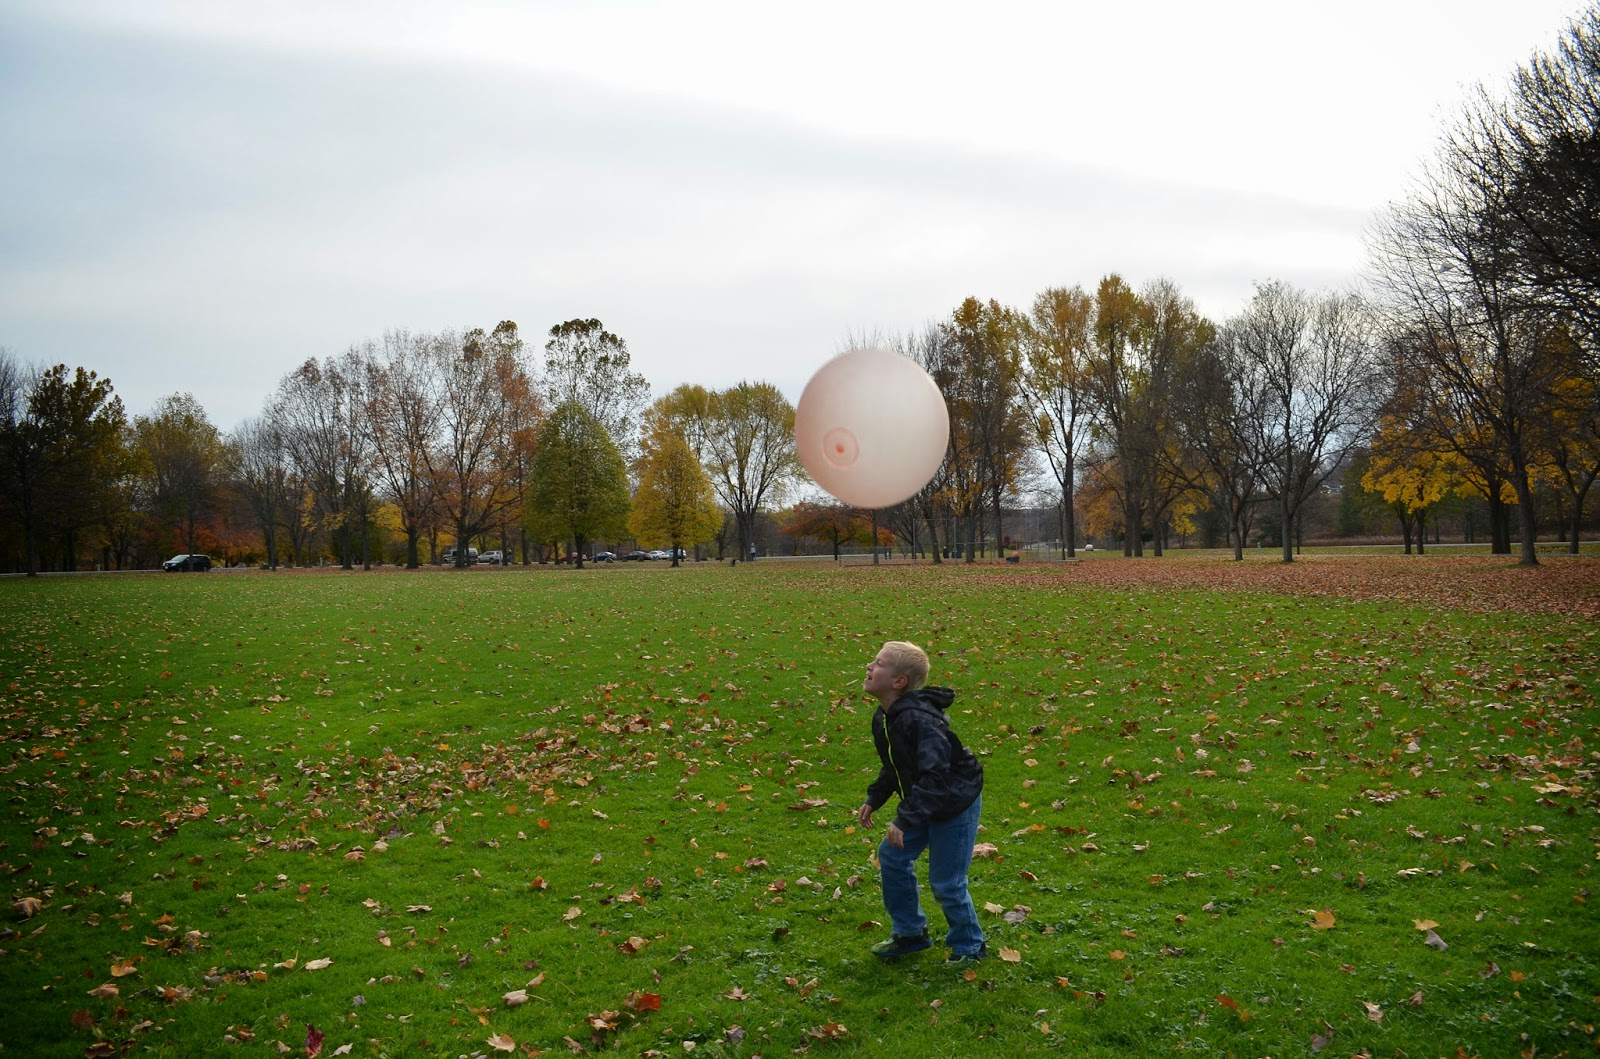 Enjoying a warm Fall day with our Wubble Ball! #wubbleball